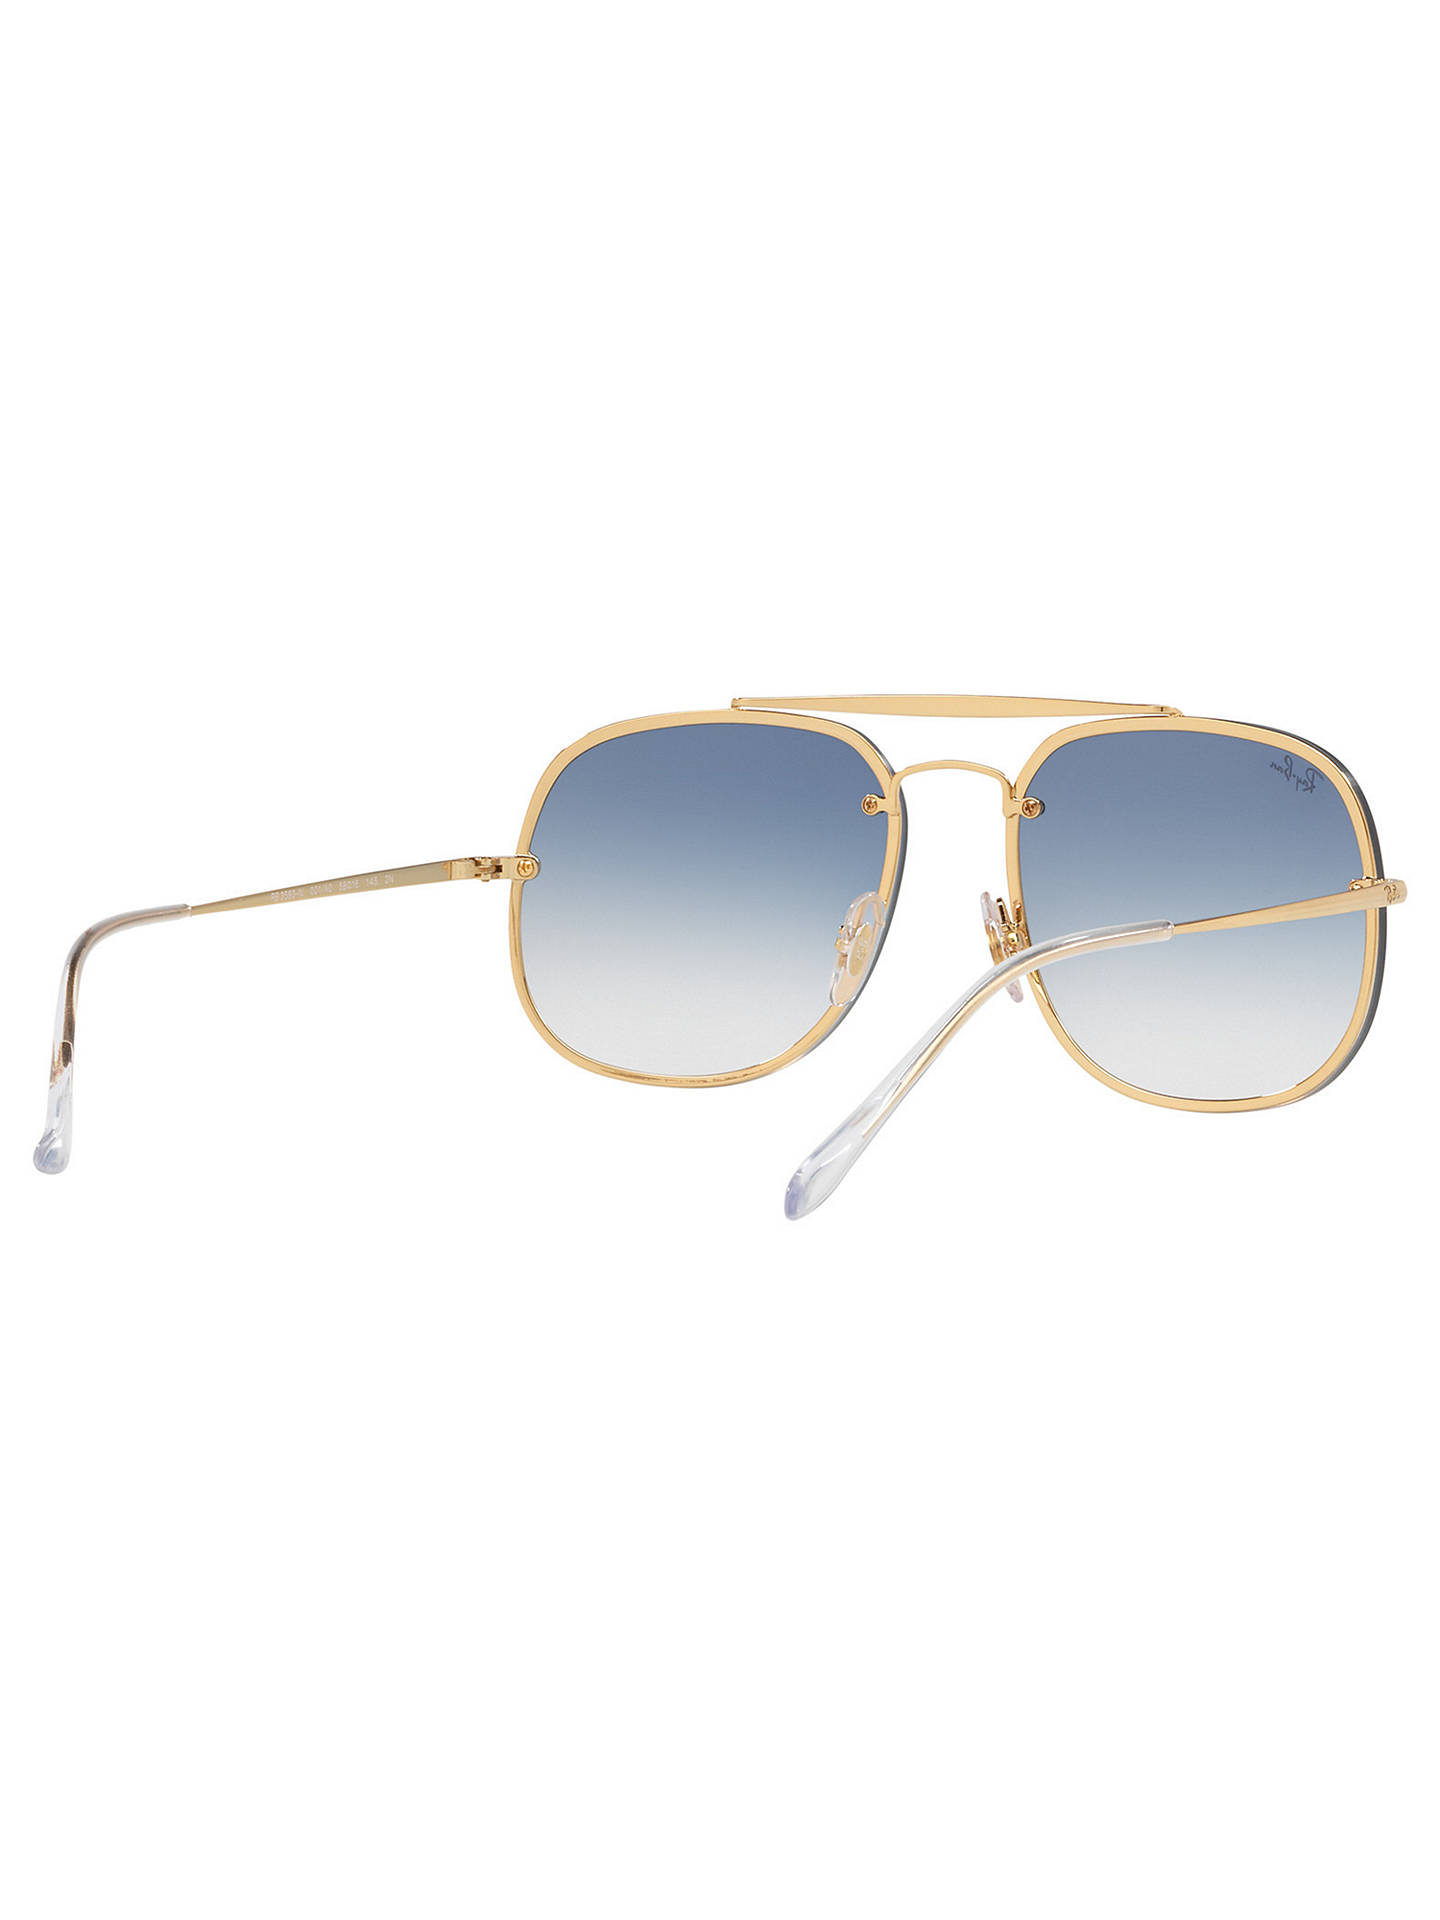 BuyRay-Ban RB3583 Unisex Square Polarised Sunglasses, Gold/Blue Online at johnlewis.com